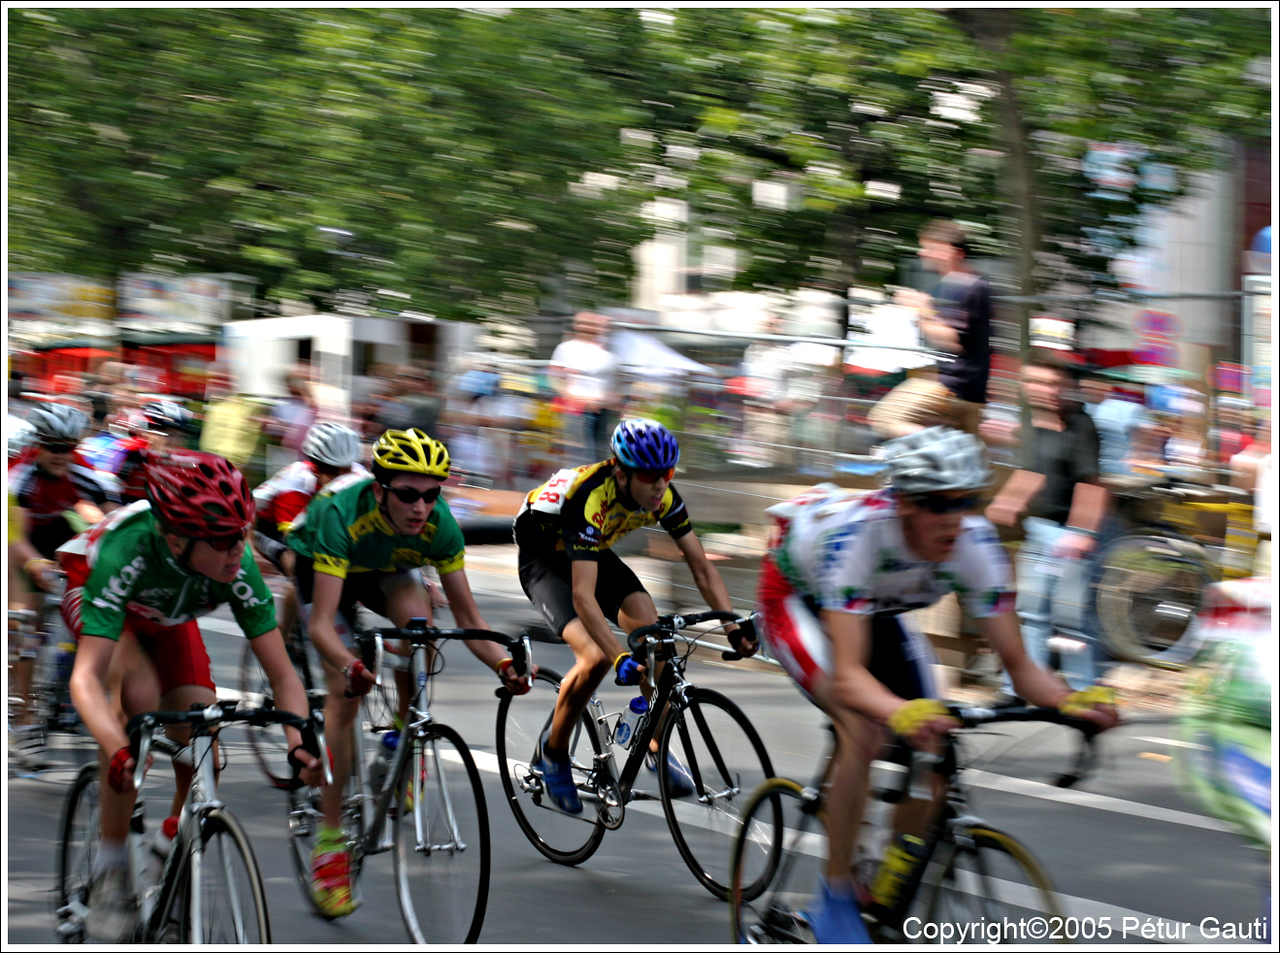 The only pic for August<br /> Somewhat impressionistic photo of a bike-race in central Berlin.